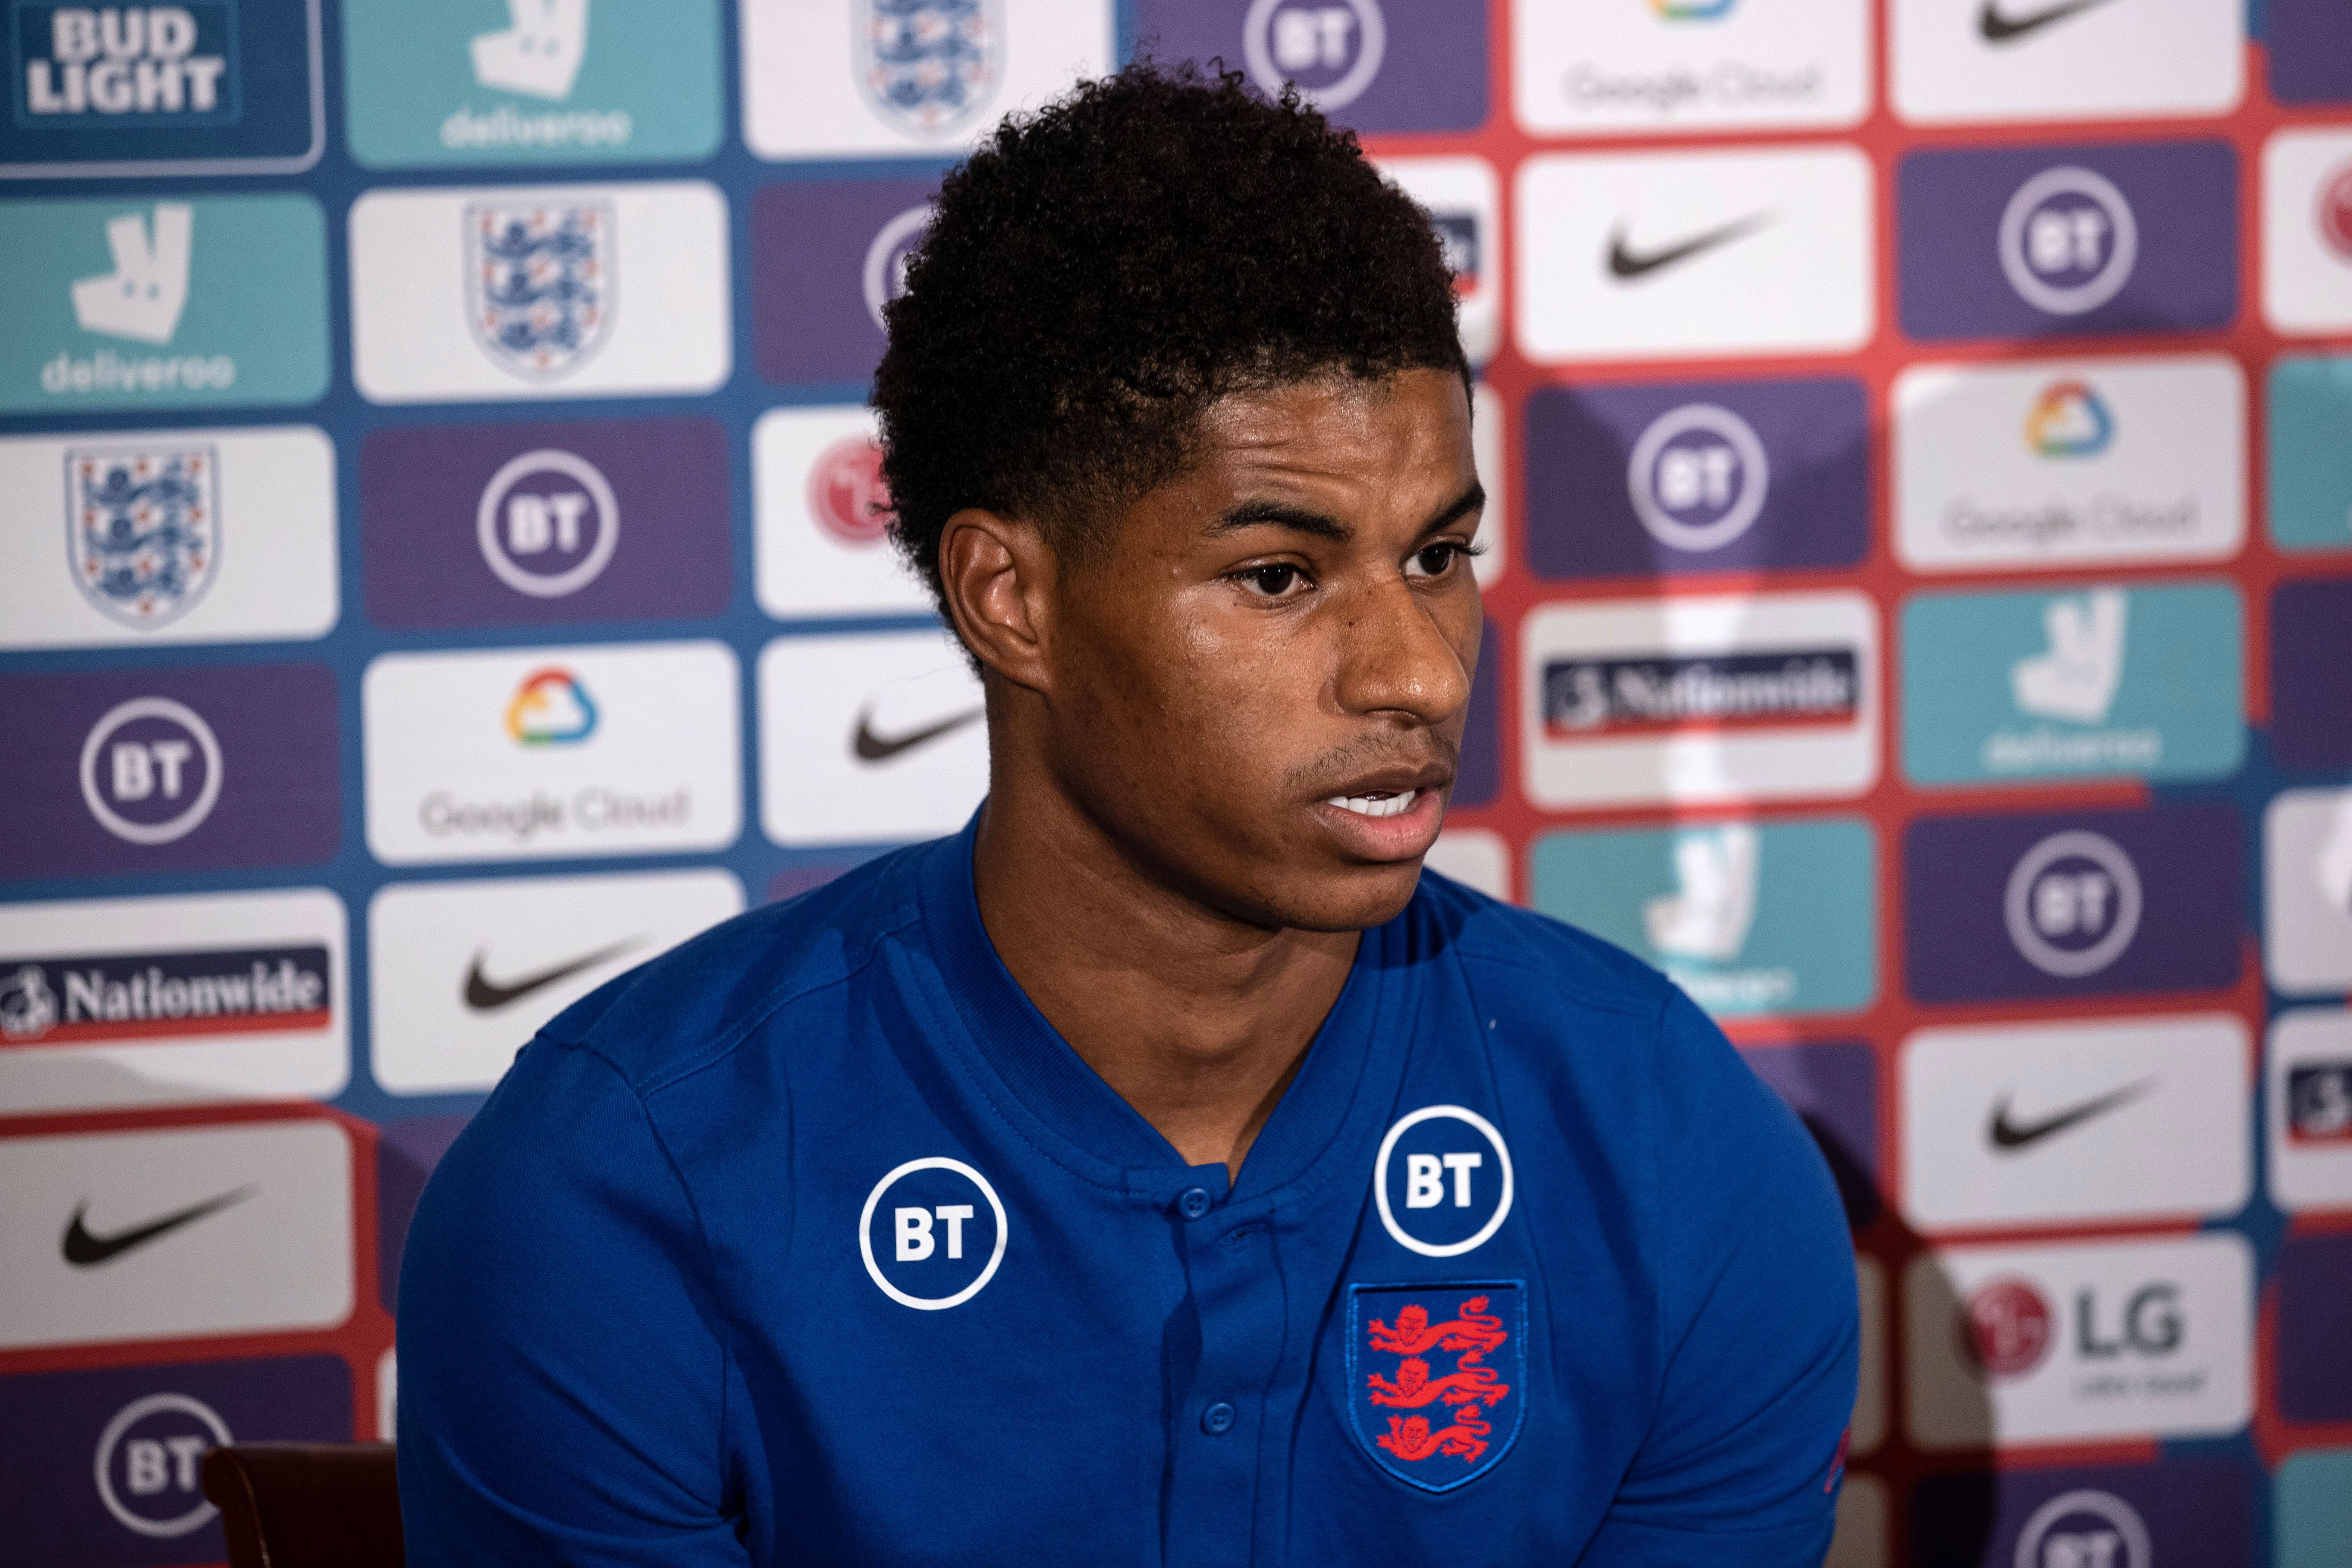 Marcus Rashford, England and Manchester United striker, speaks at a press conference in Surrey, England, on October 13.